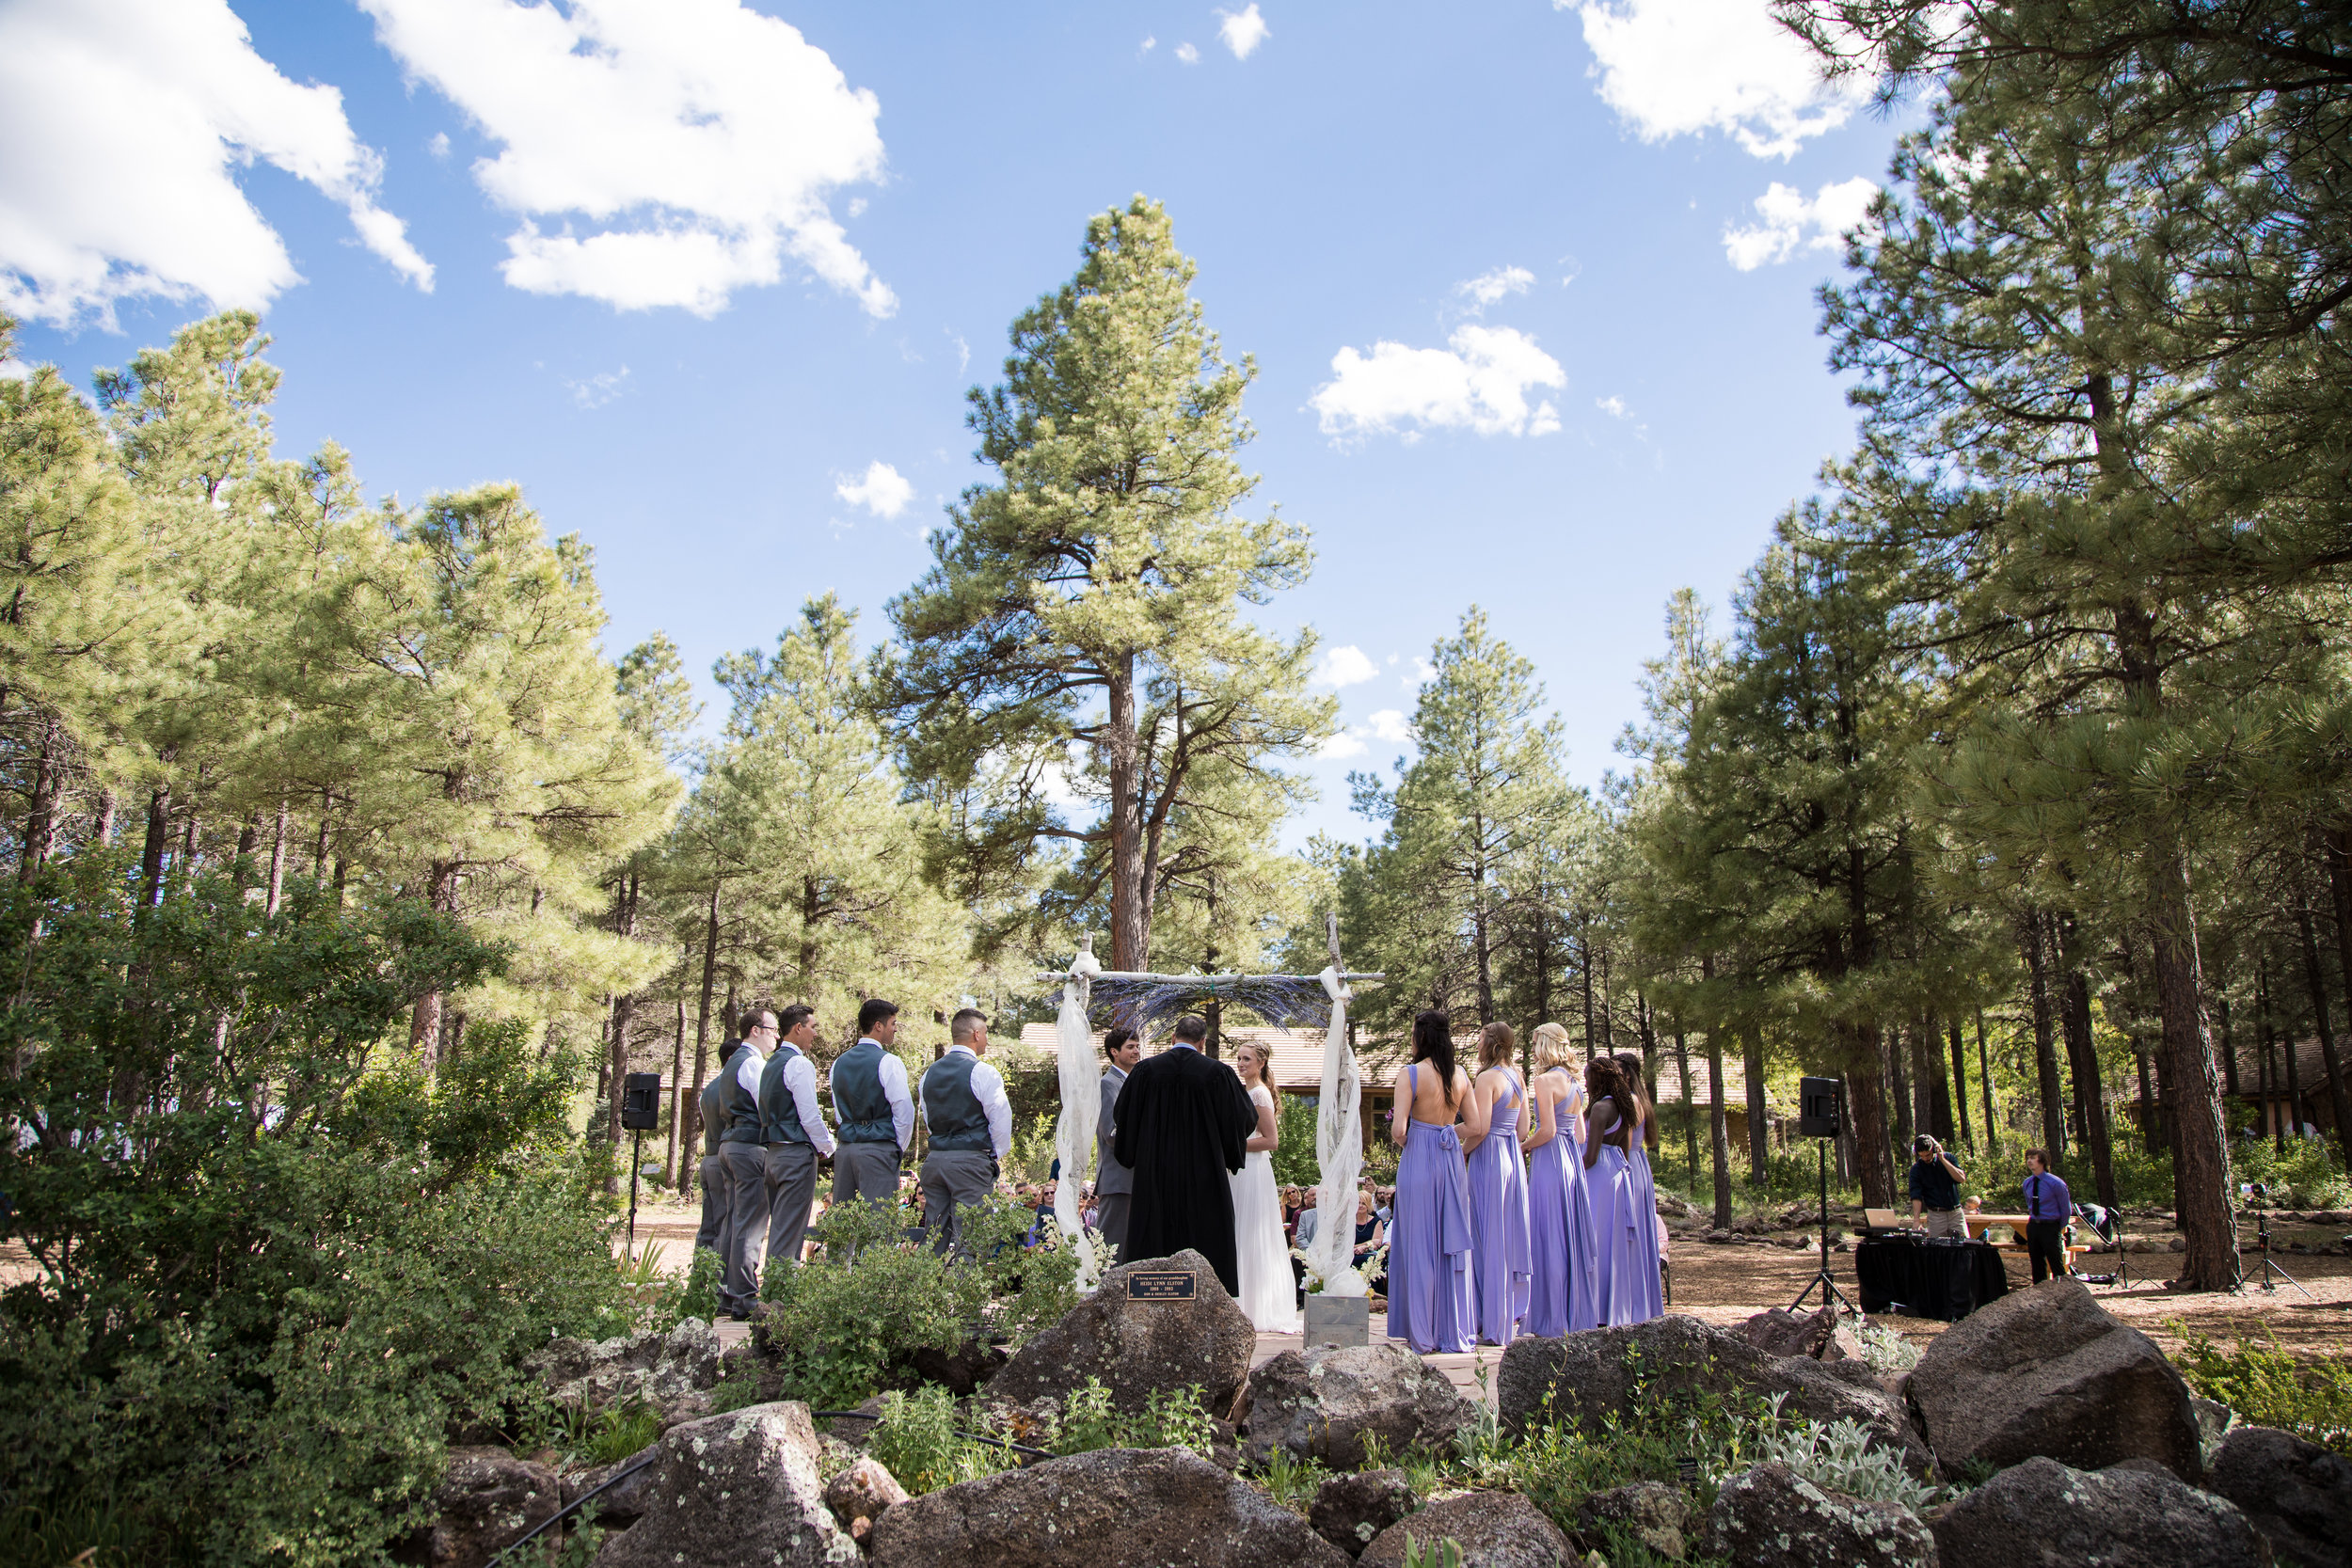 flagstaff-arboretum-wedding-ceremony